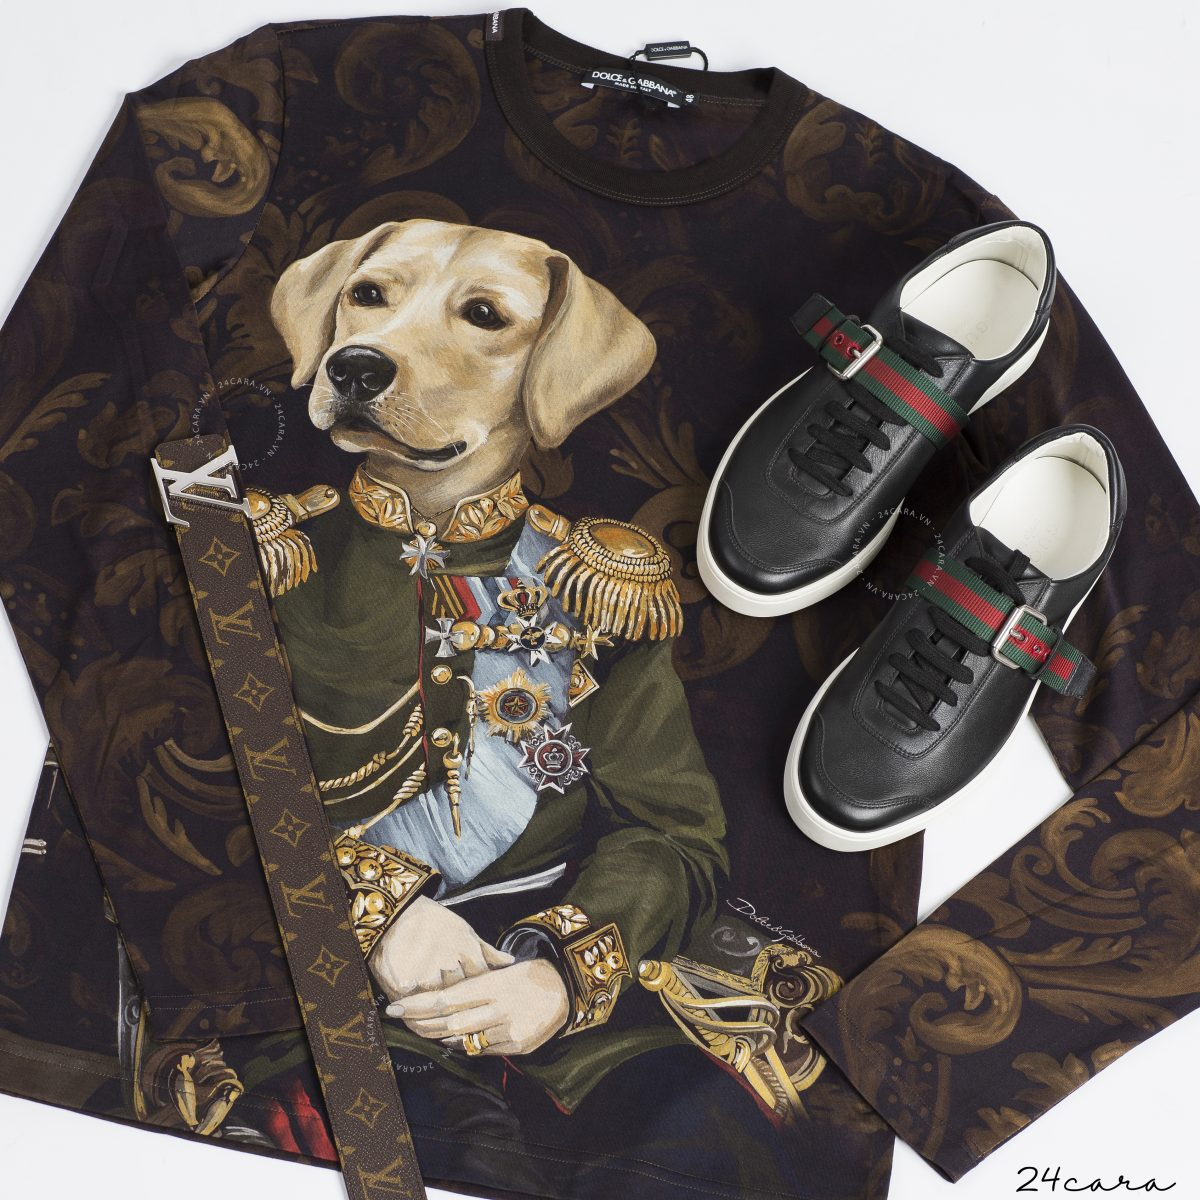 DOLCE & GABBANA PRINTED COTTON LONG SLEEVES T-SHIRT